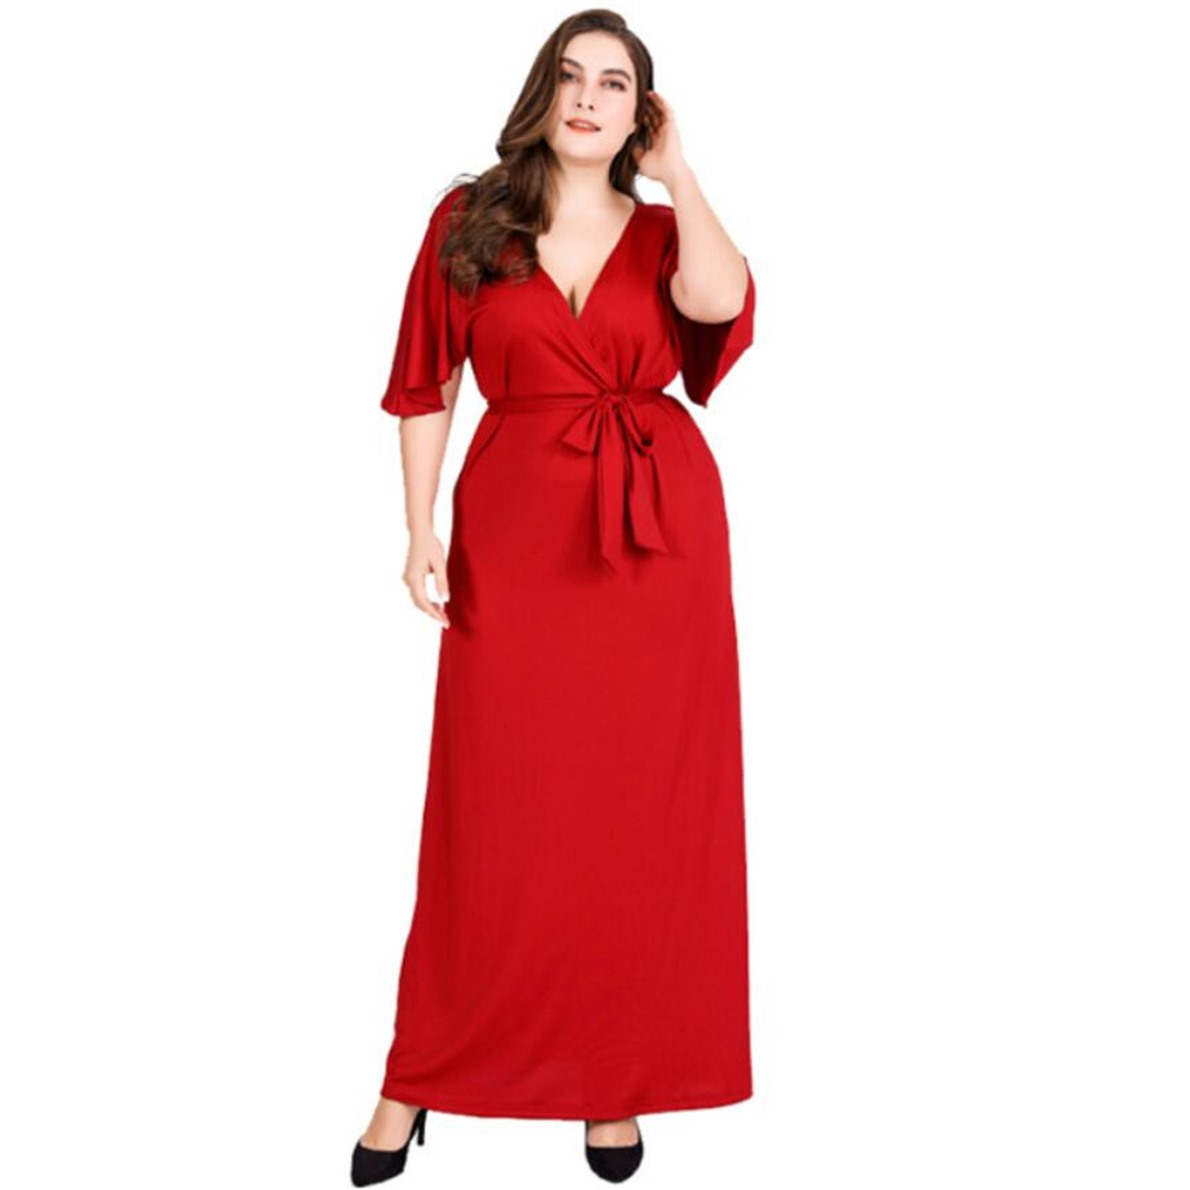 7968c788ff Women Long Sexy Low Cut Dress Casual Club Plus Size Aline Plain High waist  Female Fashion Travel Party Holiday 5XL Maxi Dress